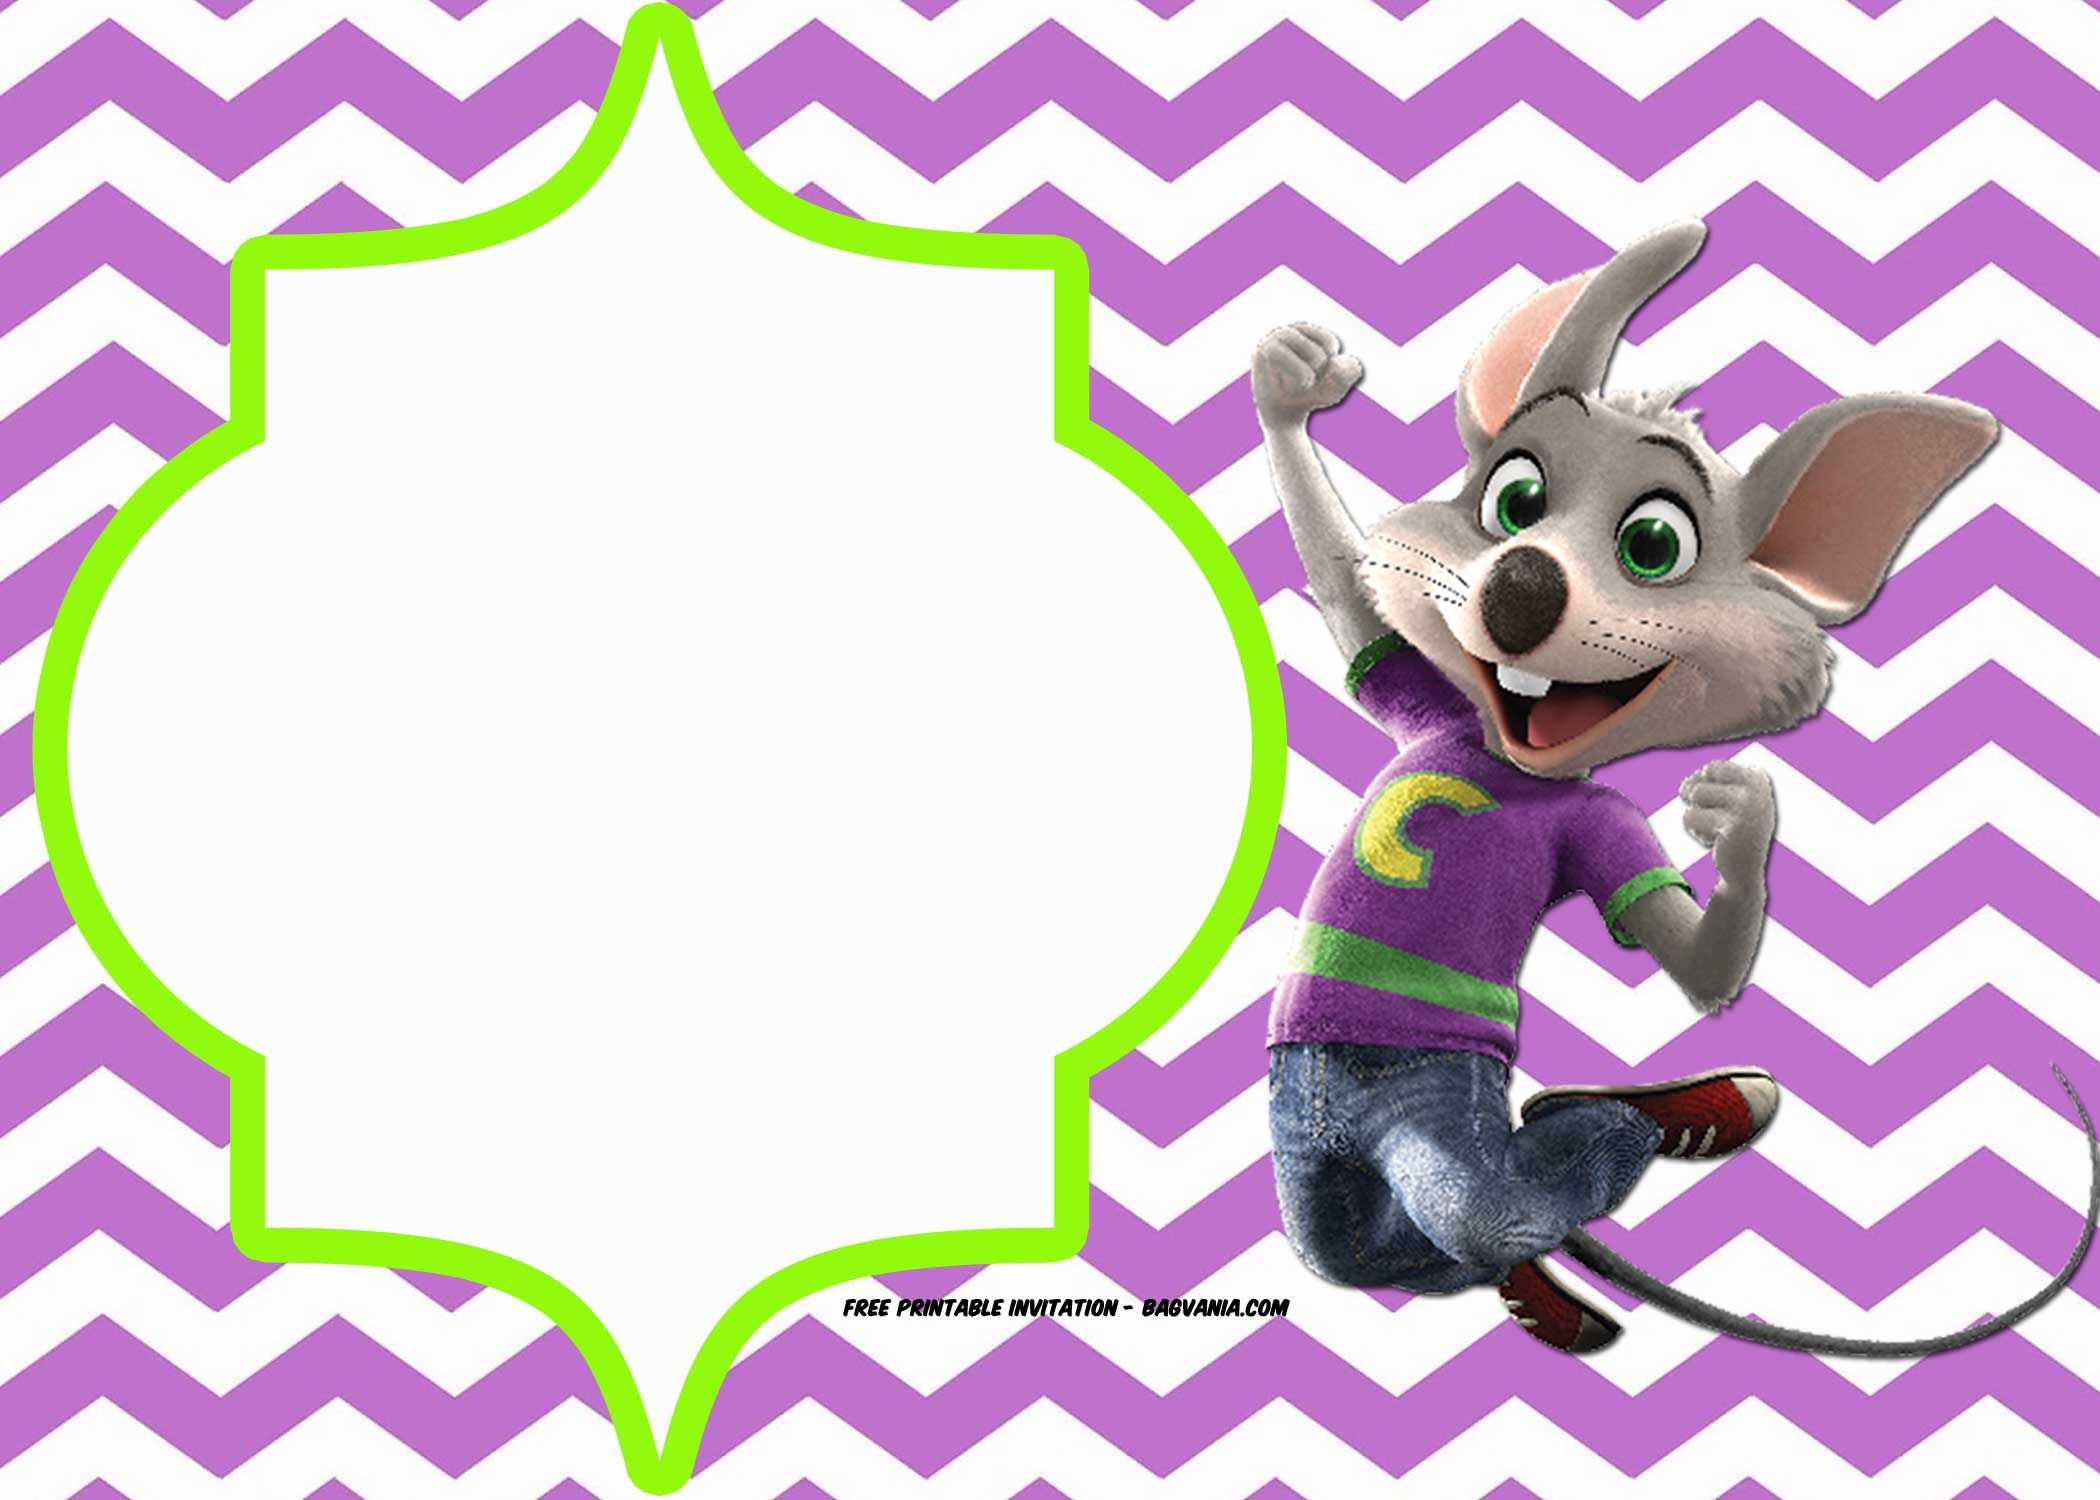 FREE Printable Chuck E Cheese Invitation